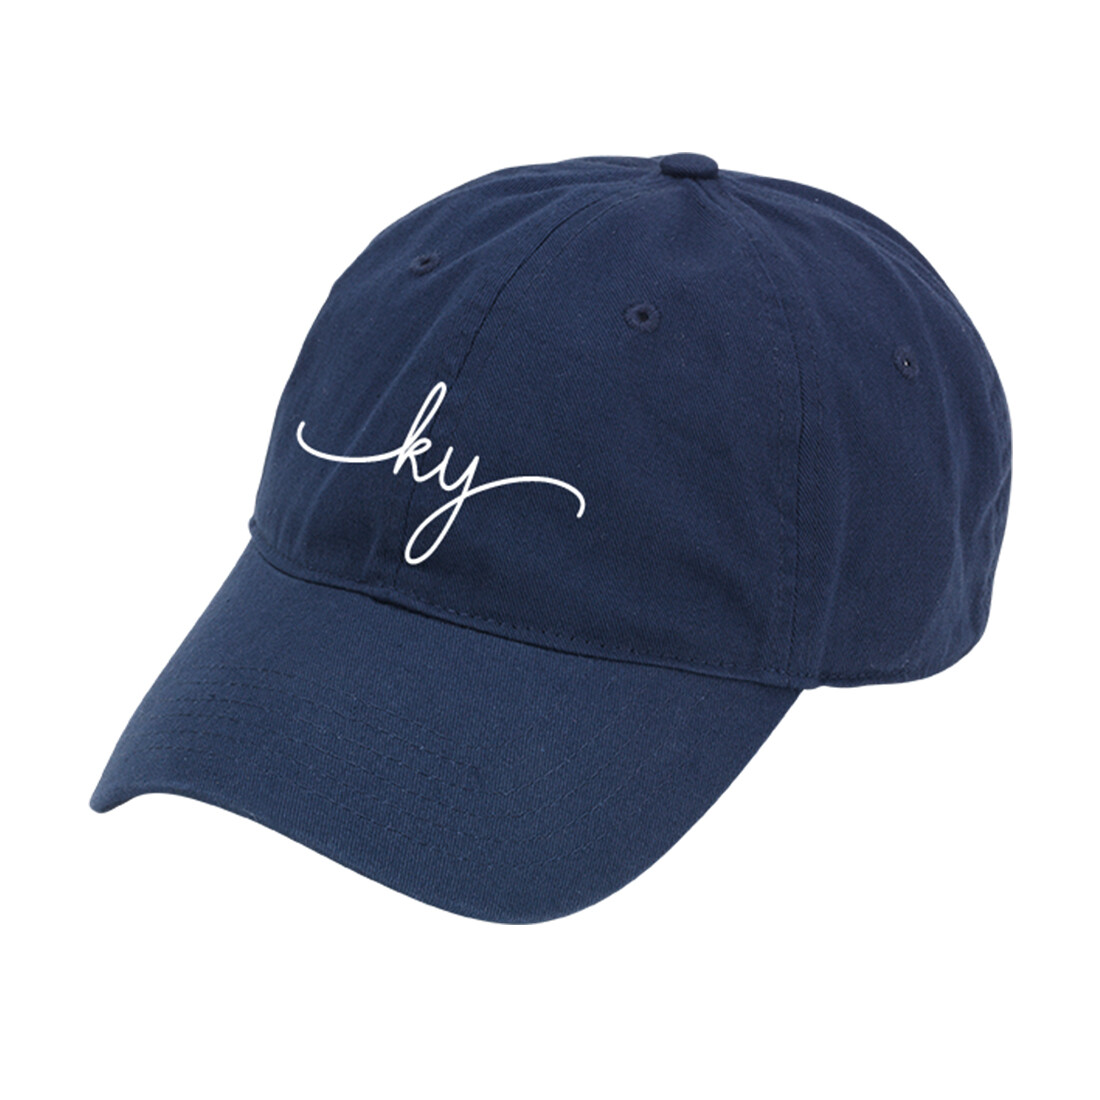 Kentucky Rep Your State Navy Hat